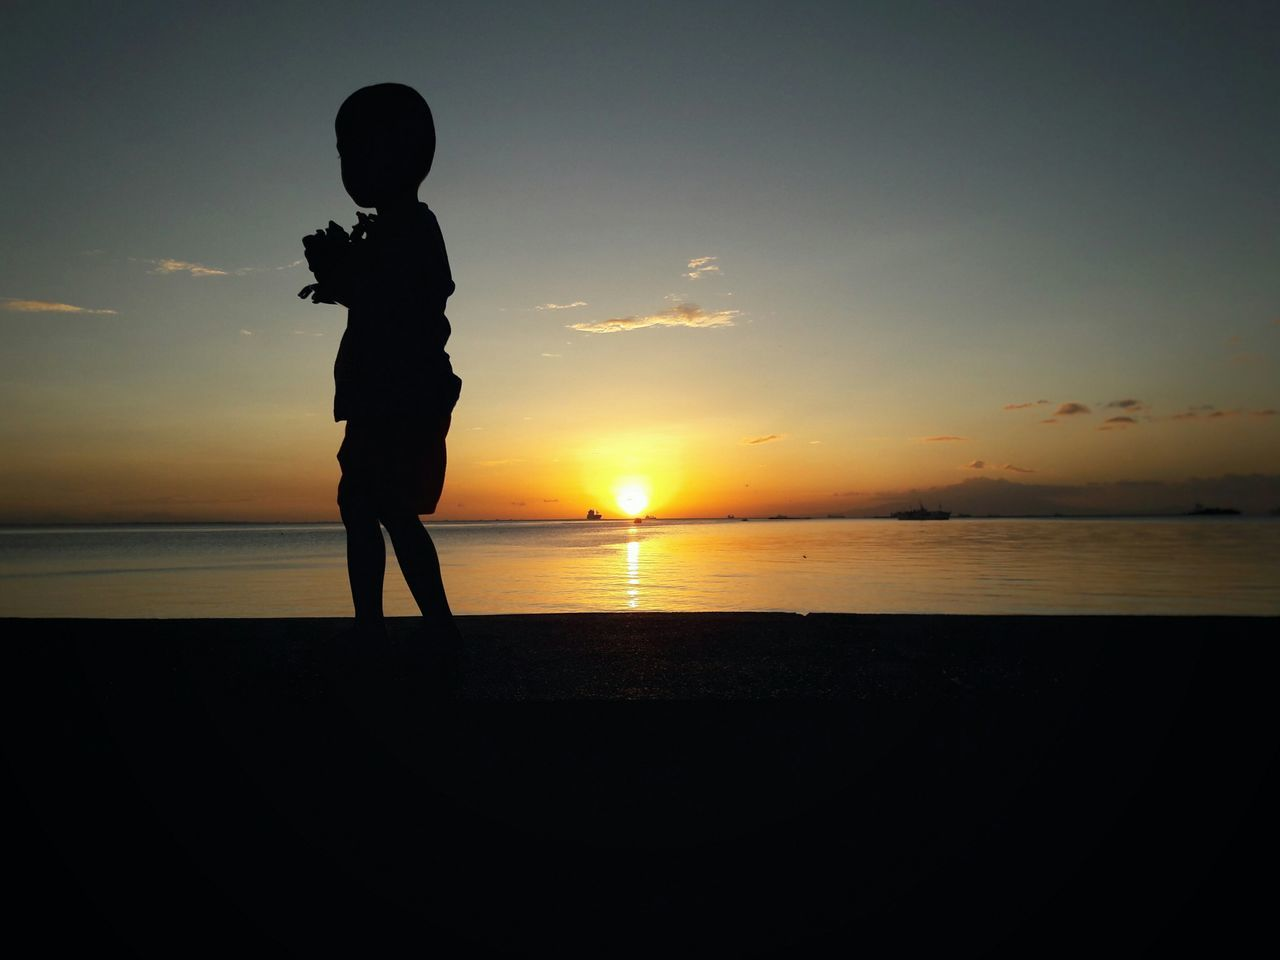 Little Boy Child One Boy Only Silhouette Sunset Horizon Over Water Childhood One Person Sunset Sky Urban Street Photography Sun Eyeem Philippines My Year My View Beginnings